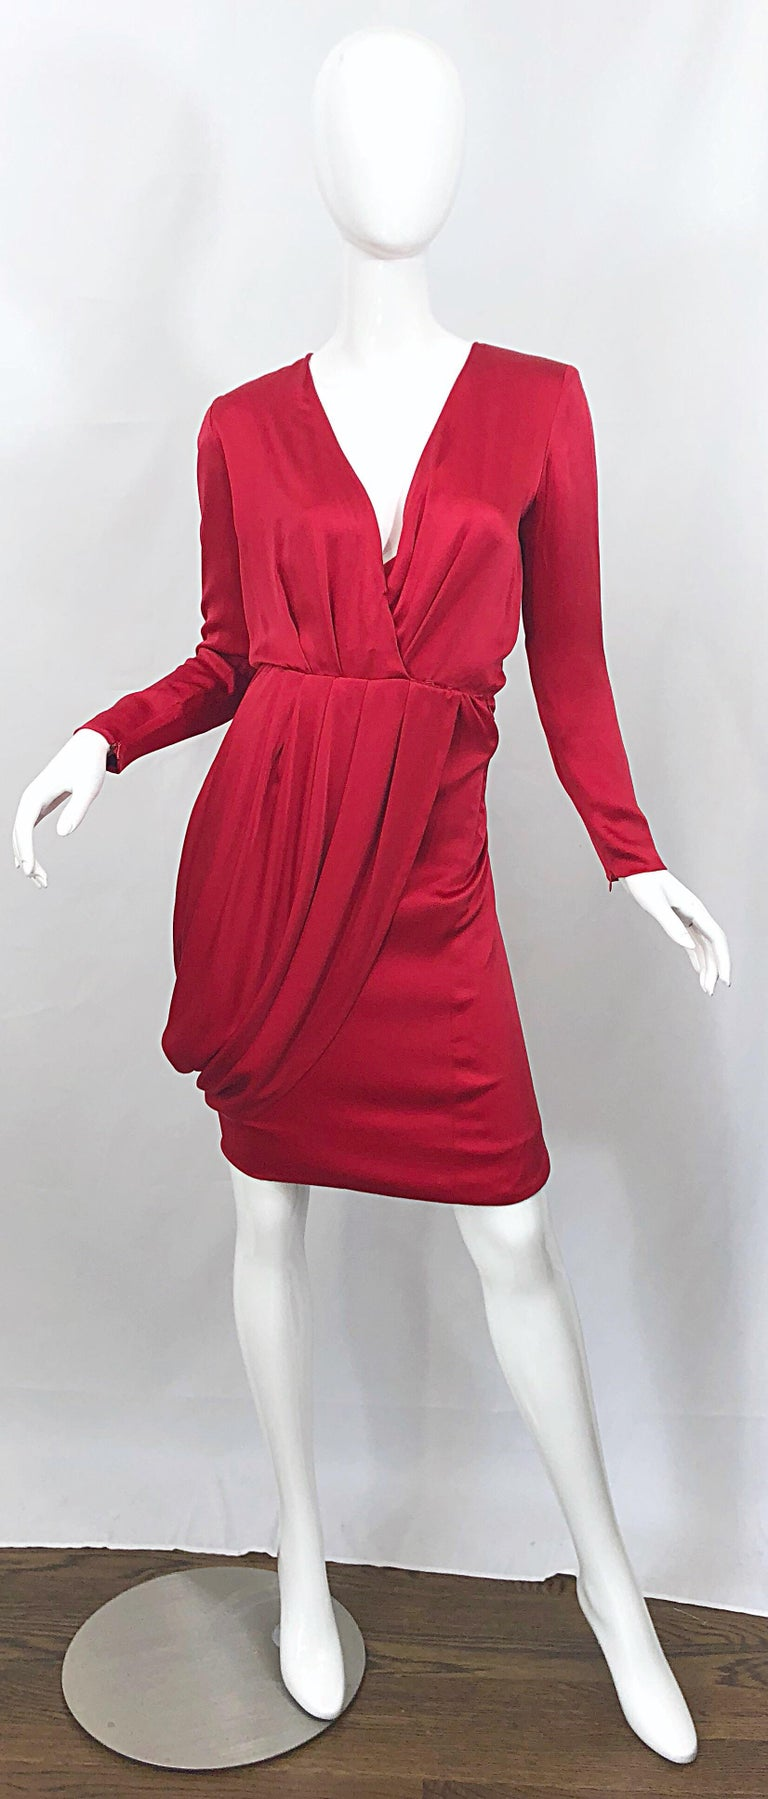 Remarkable and rare vintage GIVENCHY COUTURE, by ALEXANDER MCQUEEN lipstick red plunging cape dress! From the A/W 1998 collection. Sexy, yet not overly, this gem is extremely well made, with heavy attention to detail. Most of the workmanship was